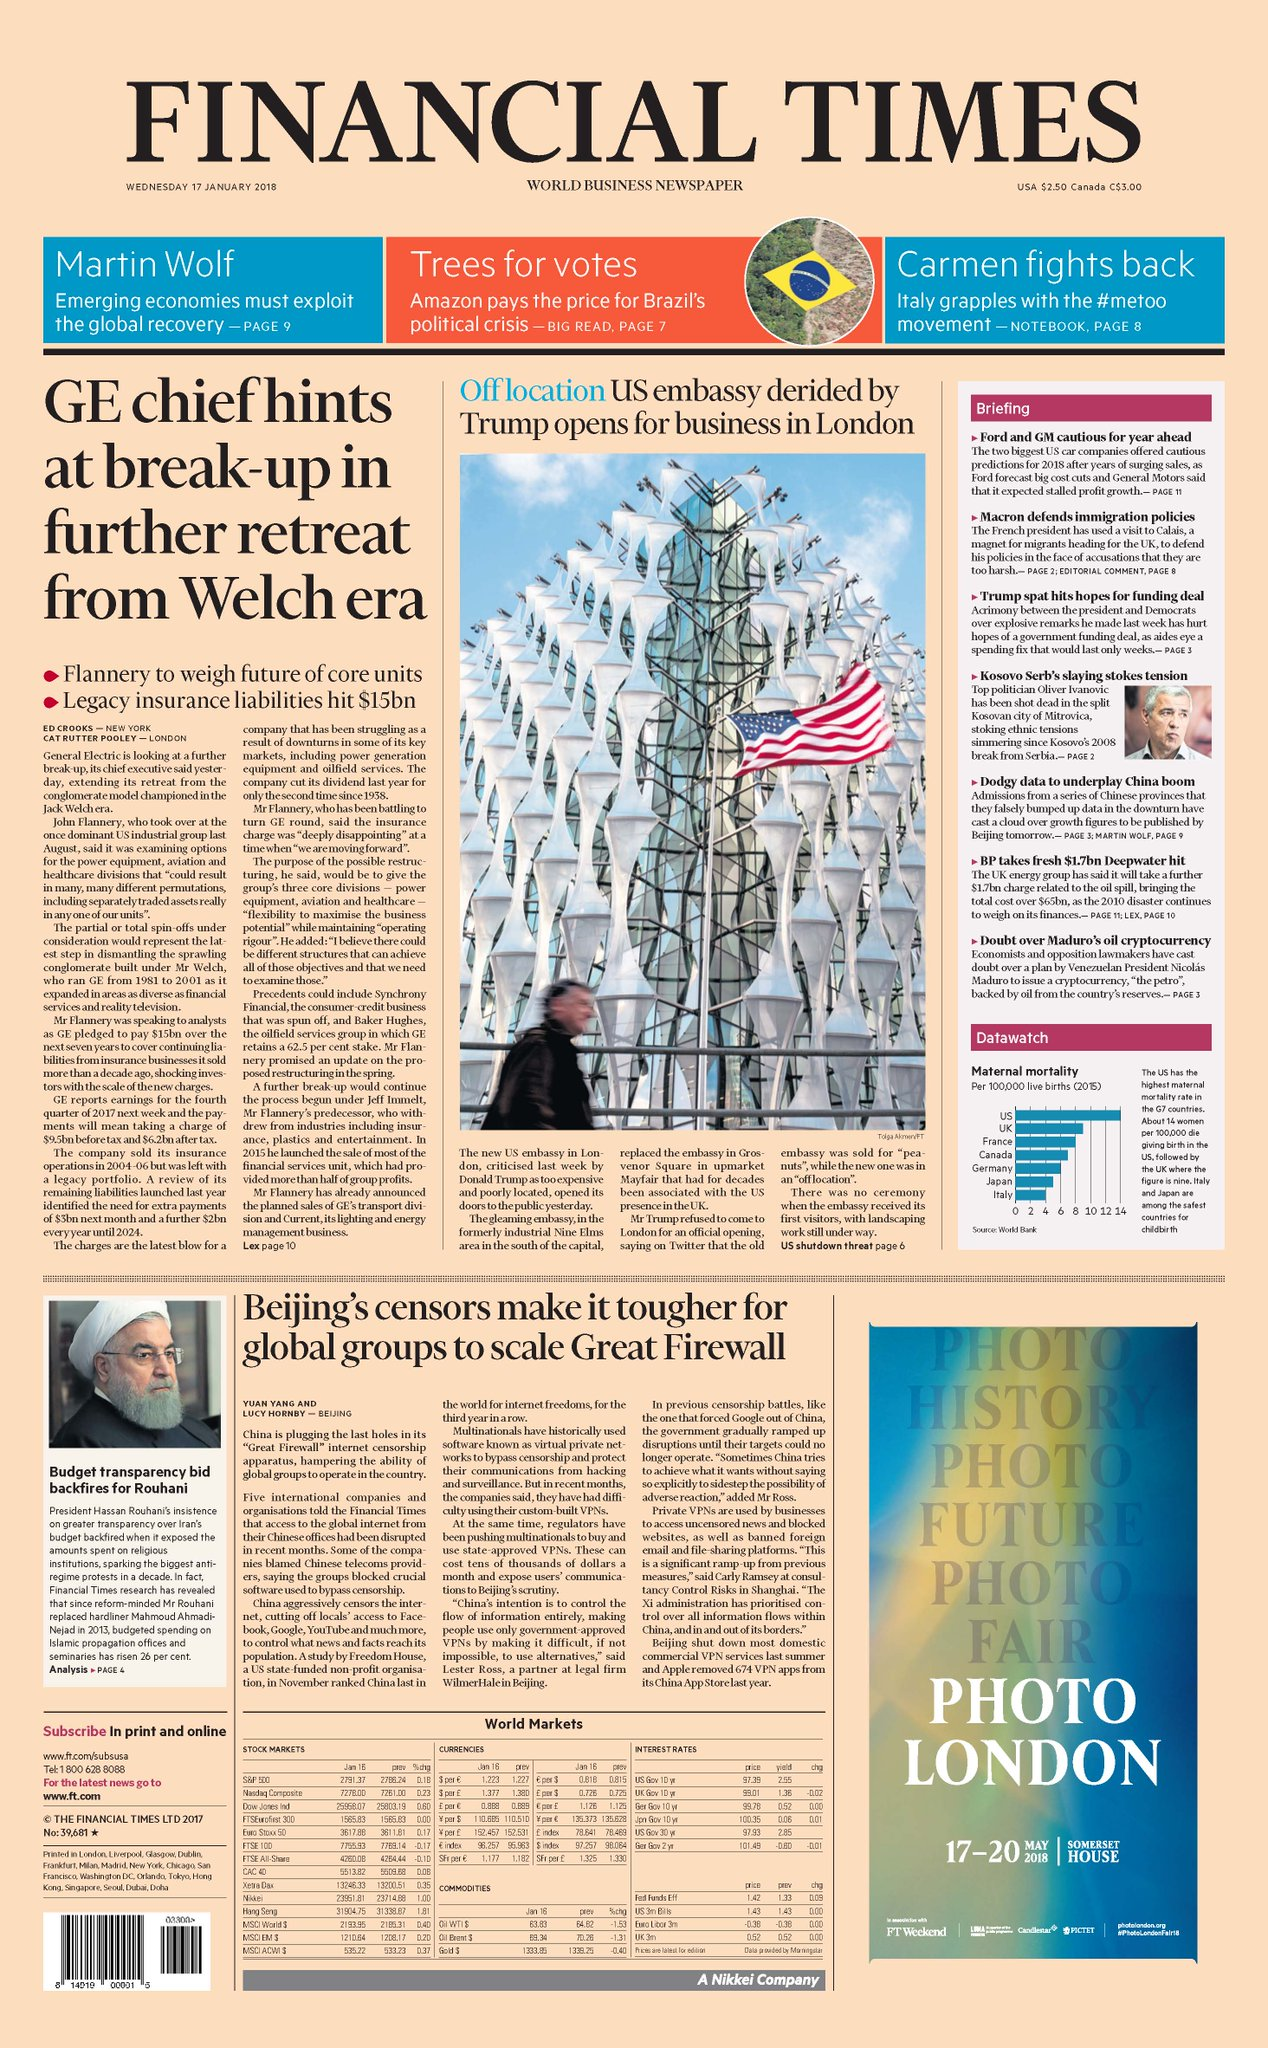 Just published: front page of the Financial Times international edition for January 17 https://t.co/kVKoZQEO7m https://t.co/tpAz3EUIuO